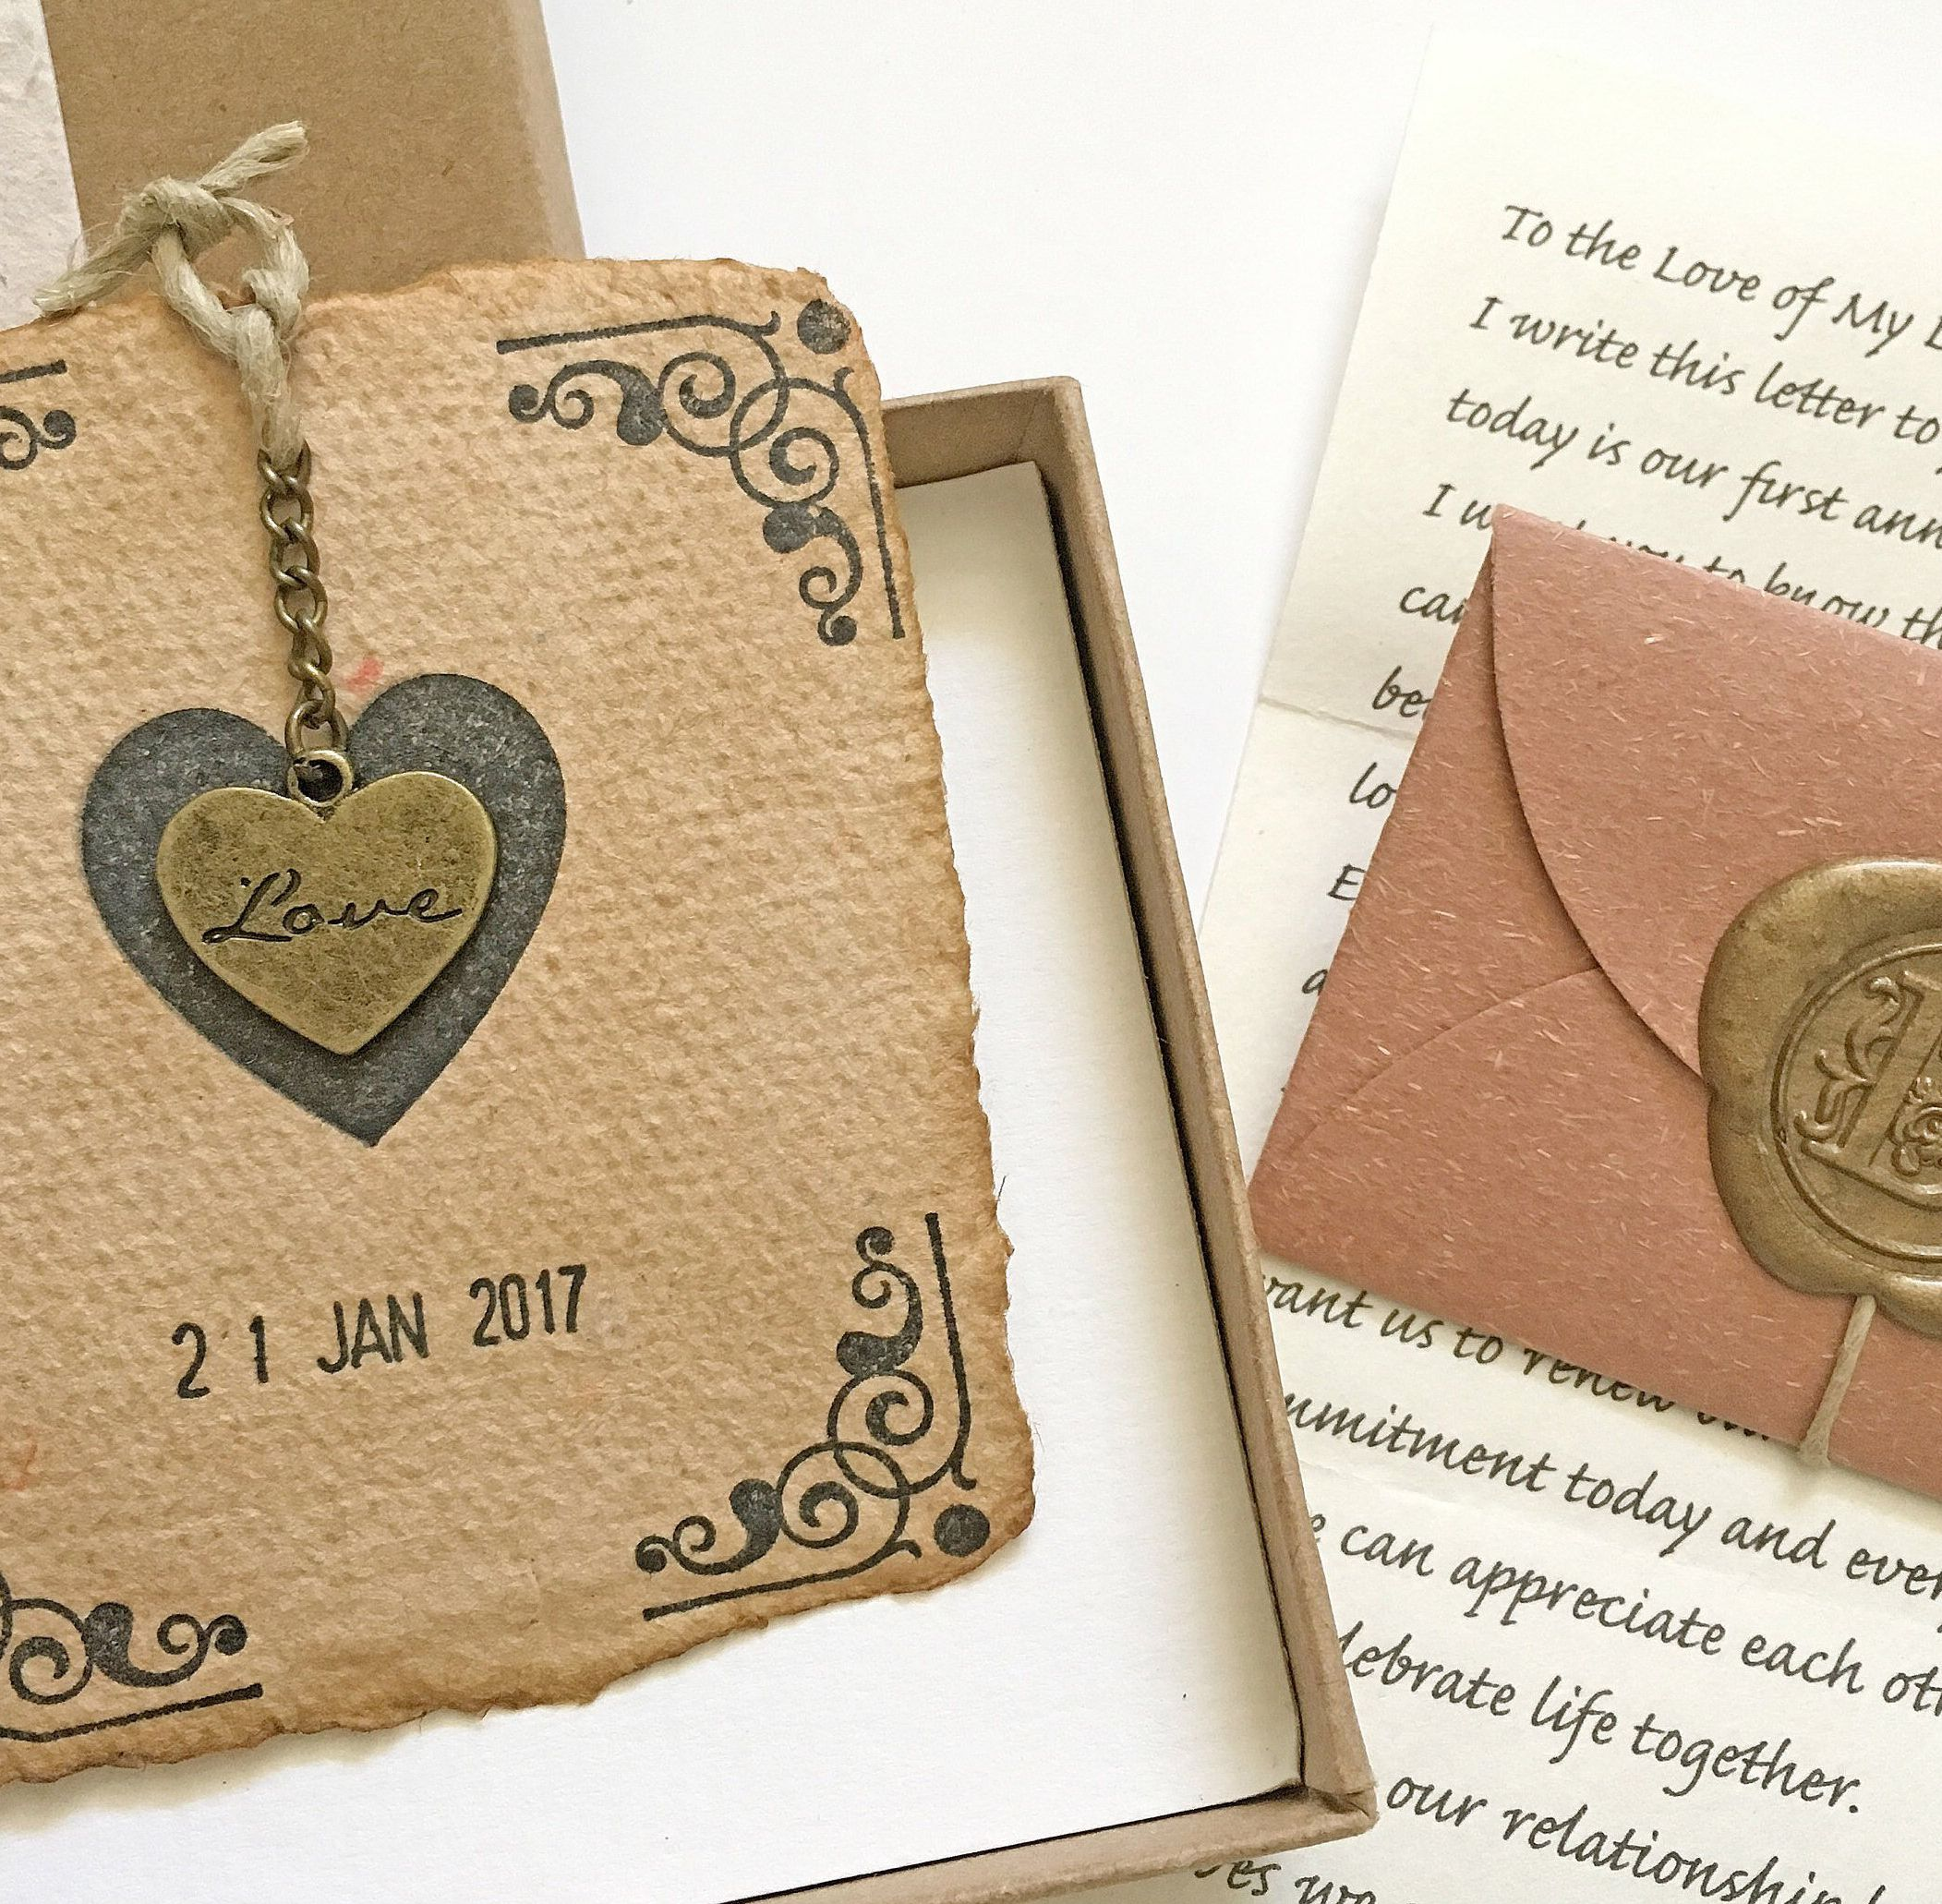 One year wedding anniversary gift for him, her